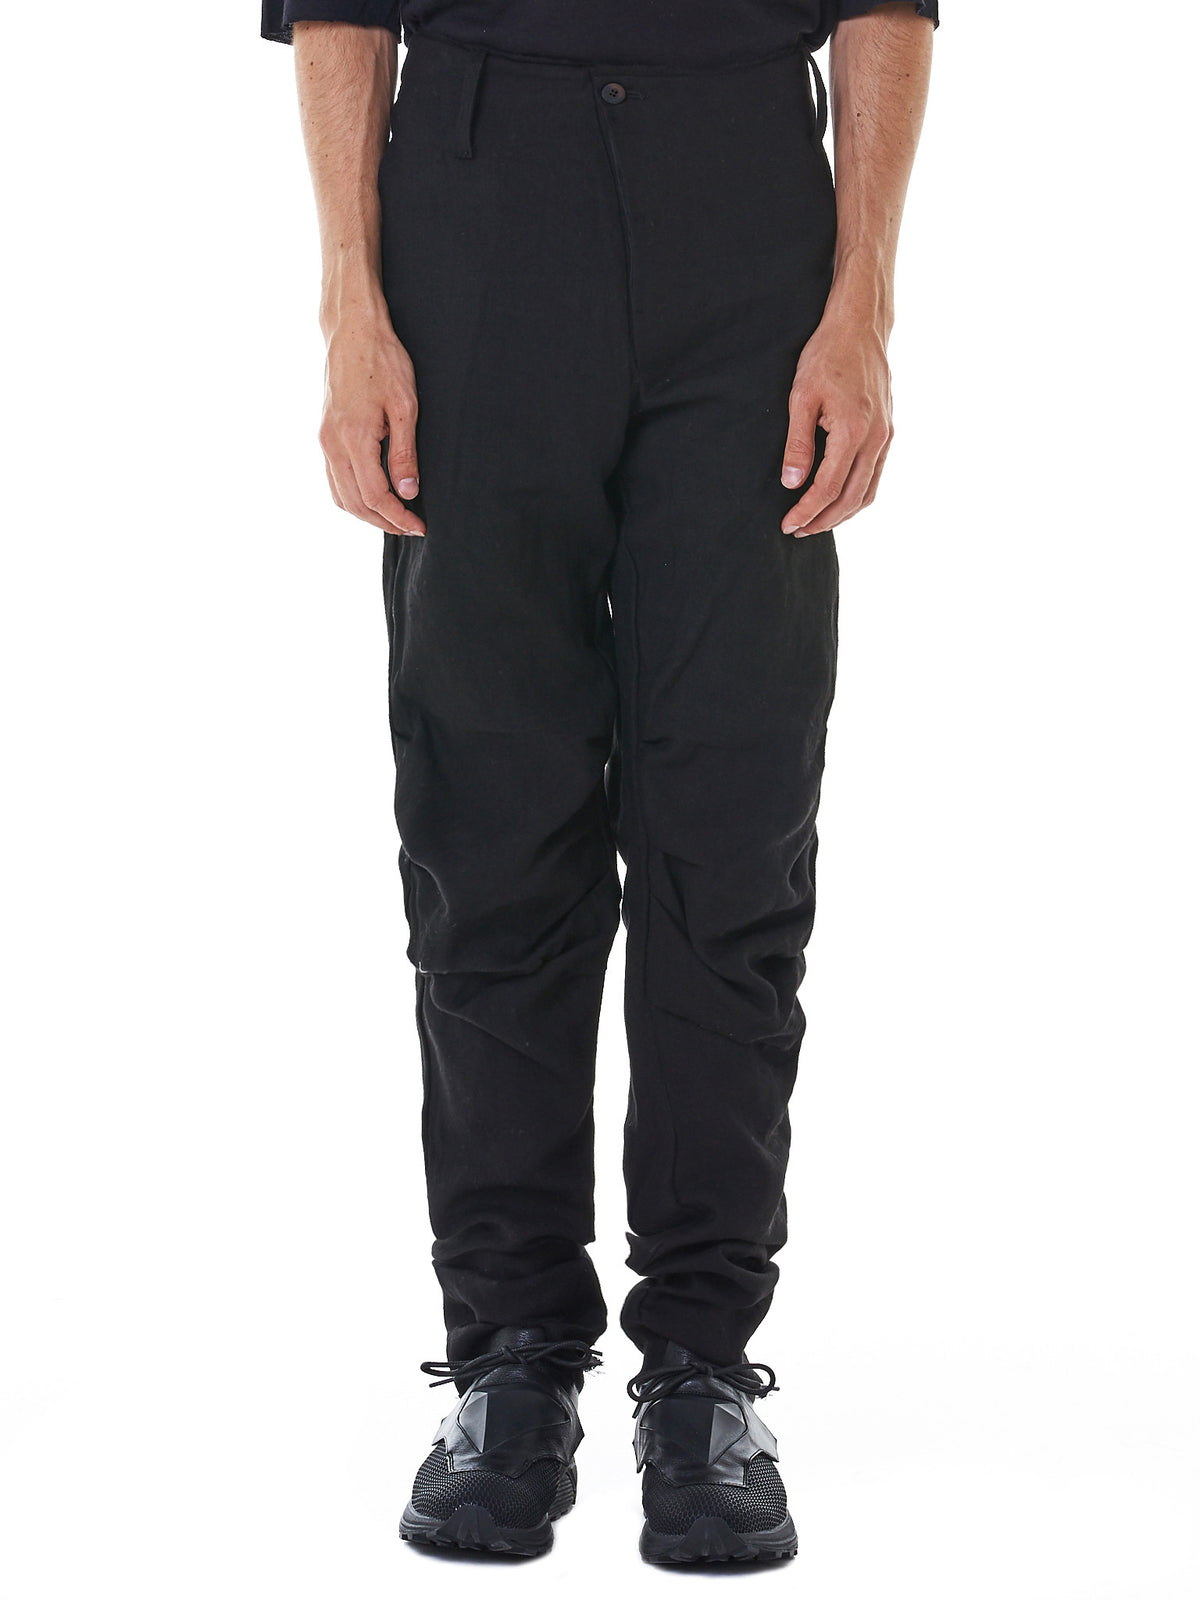 Modified Trousers (20-500-661-BLACK)